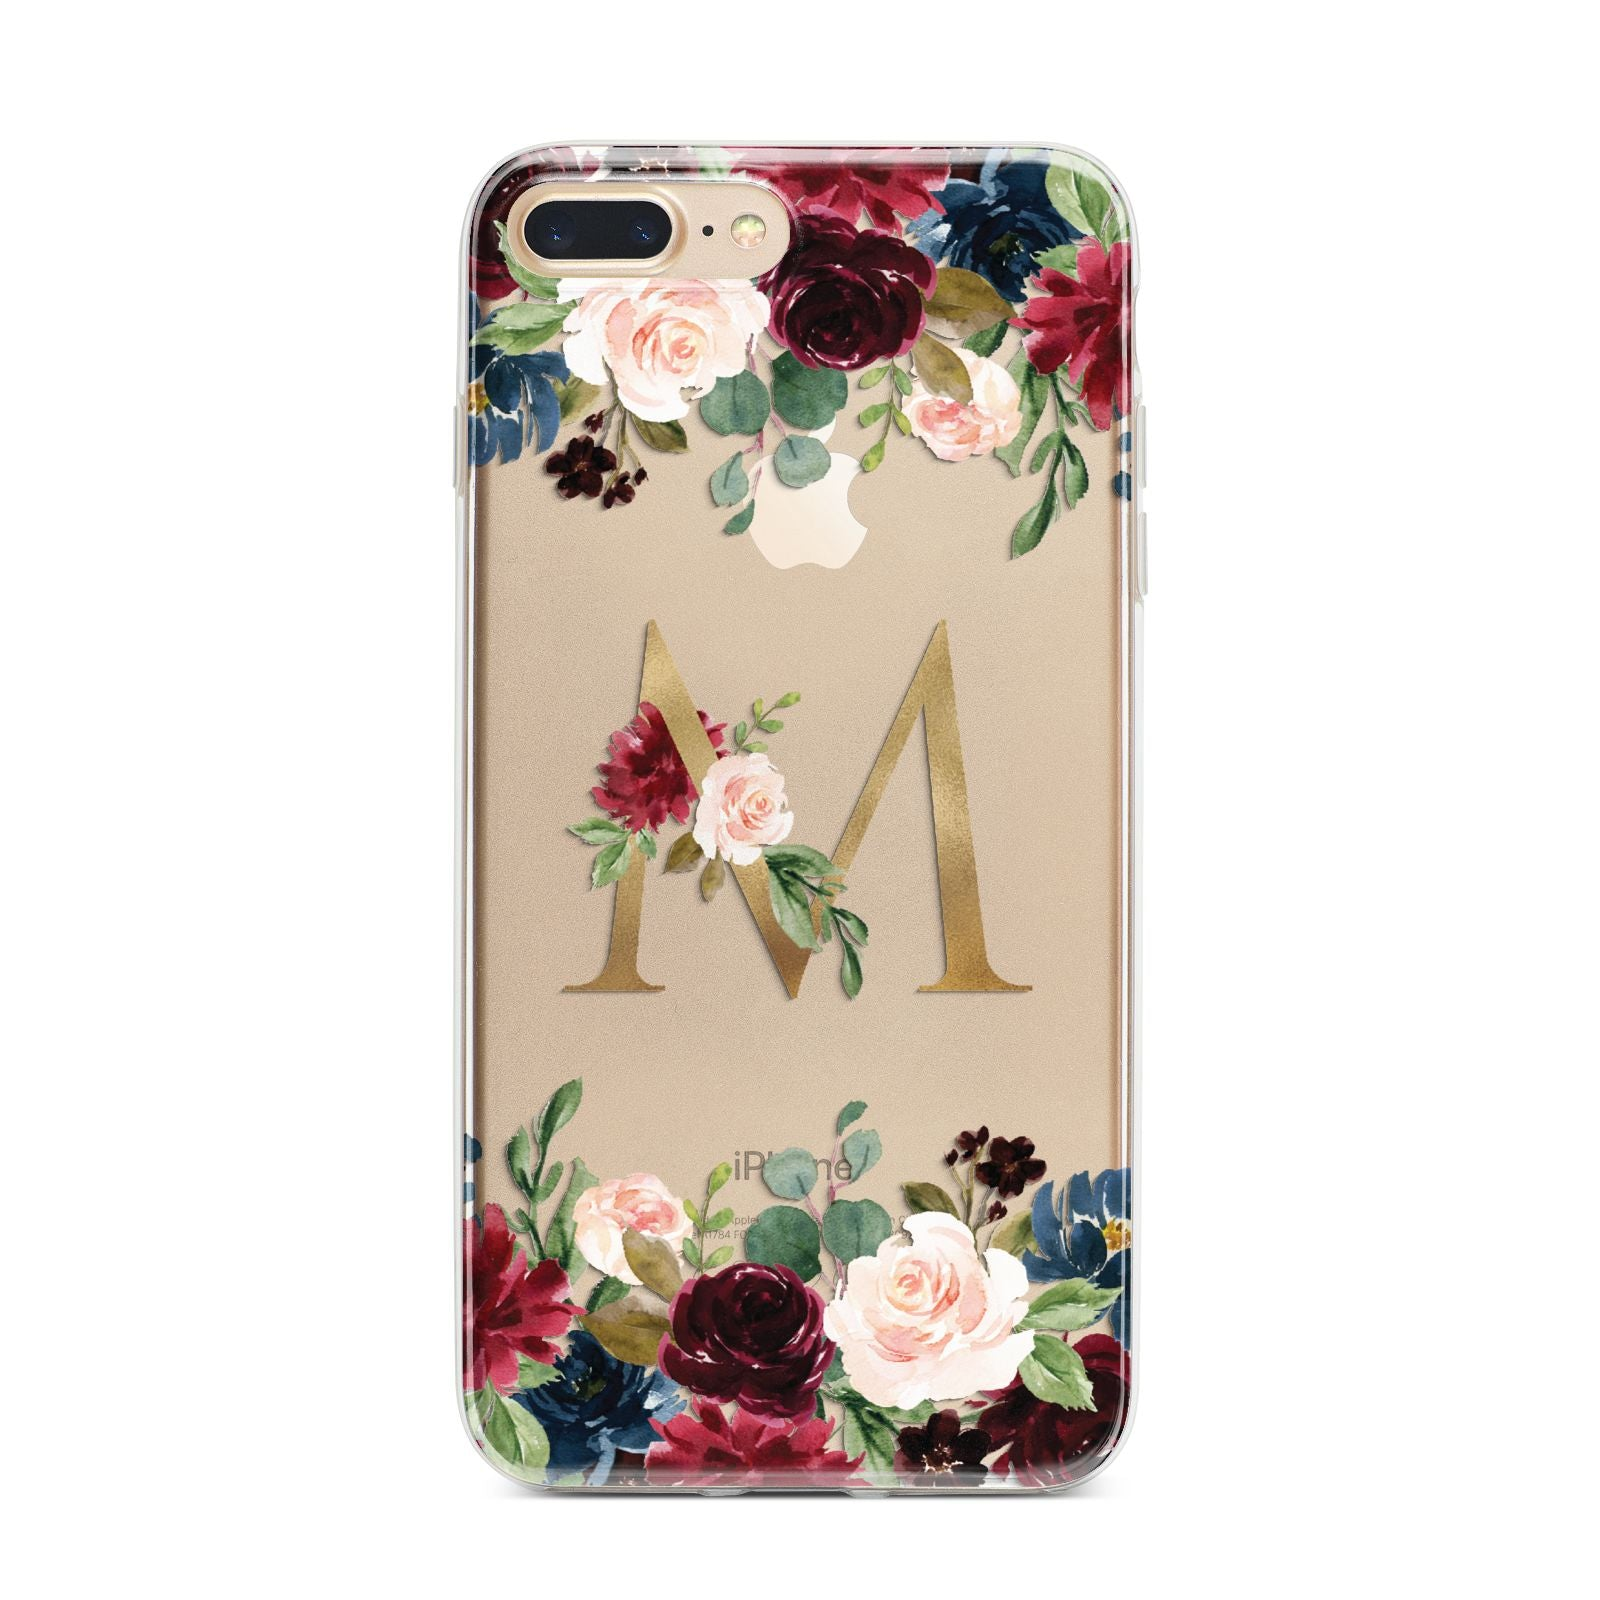 Personalised Clear Monogram Floral iPhone 7 Plus Bumper Case on Gold iPhone